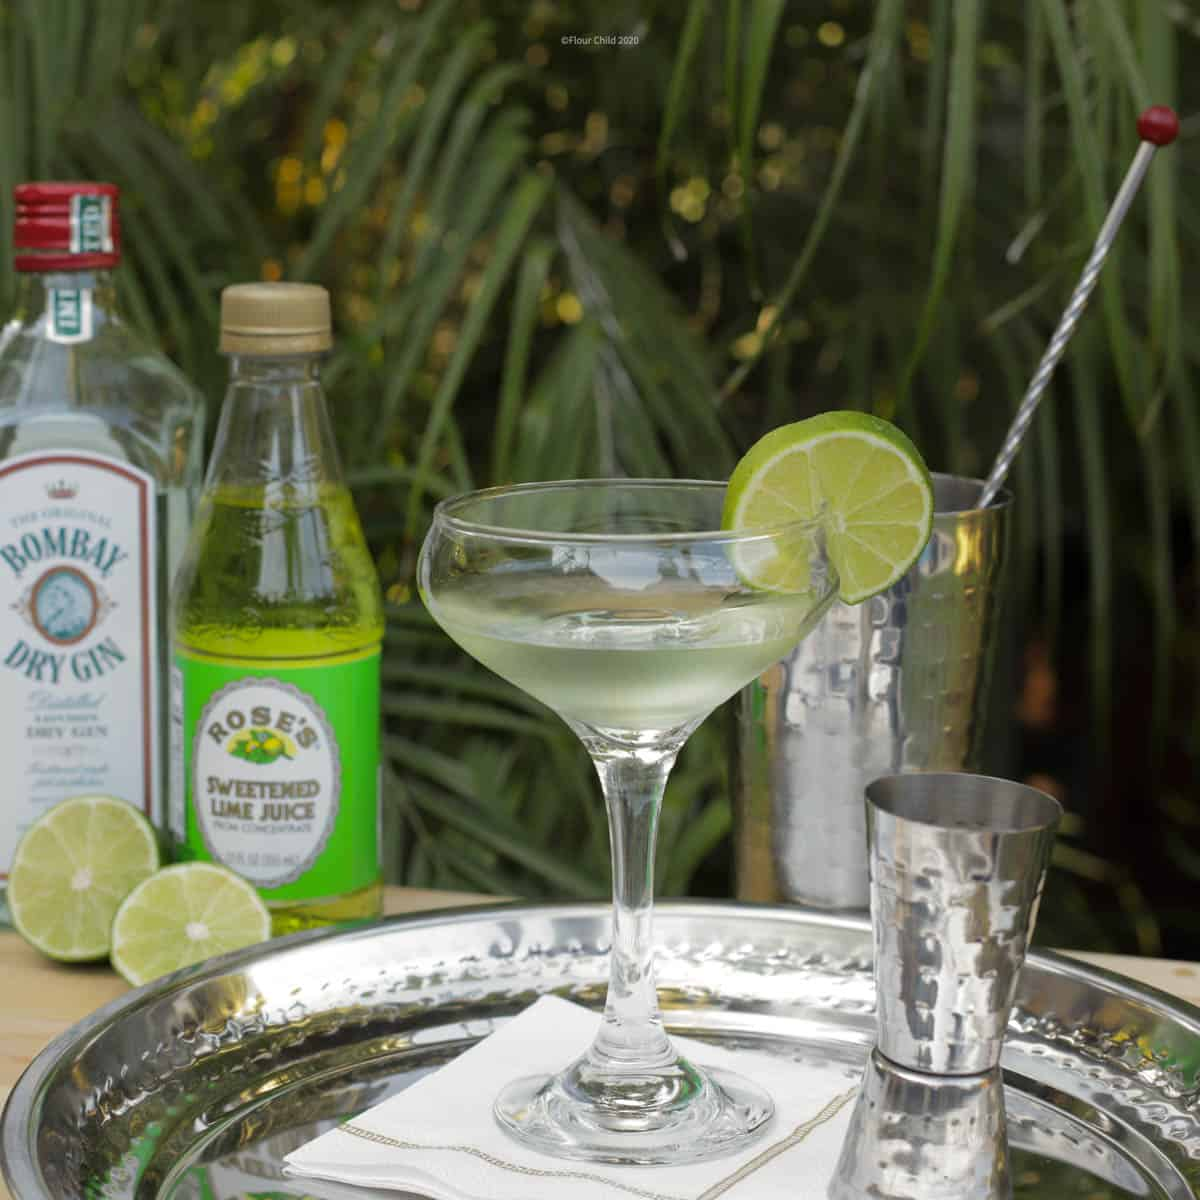 A gimlet cocktail in a coupe glass with dry gin and Rose's lime juice on a silver tray.